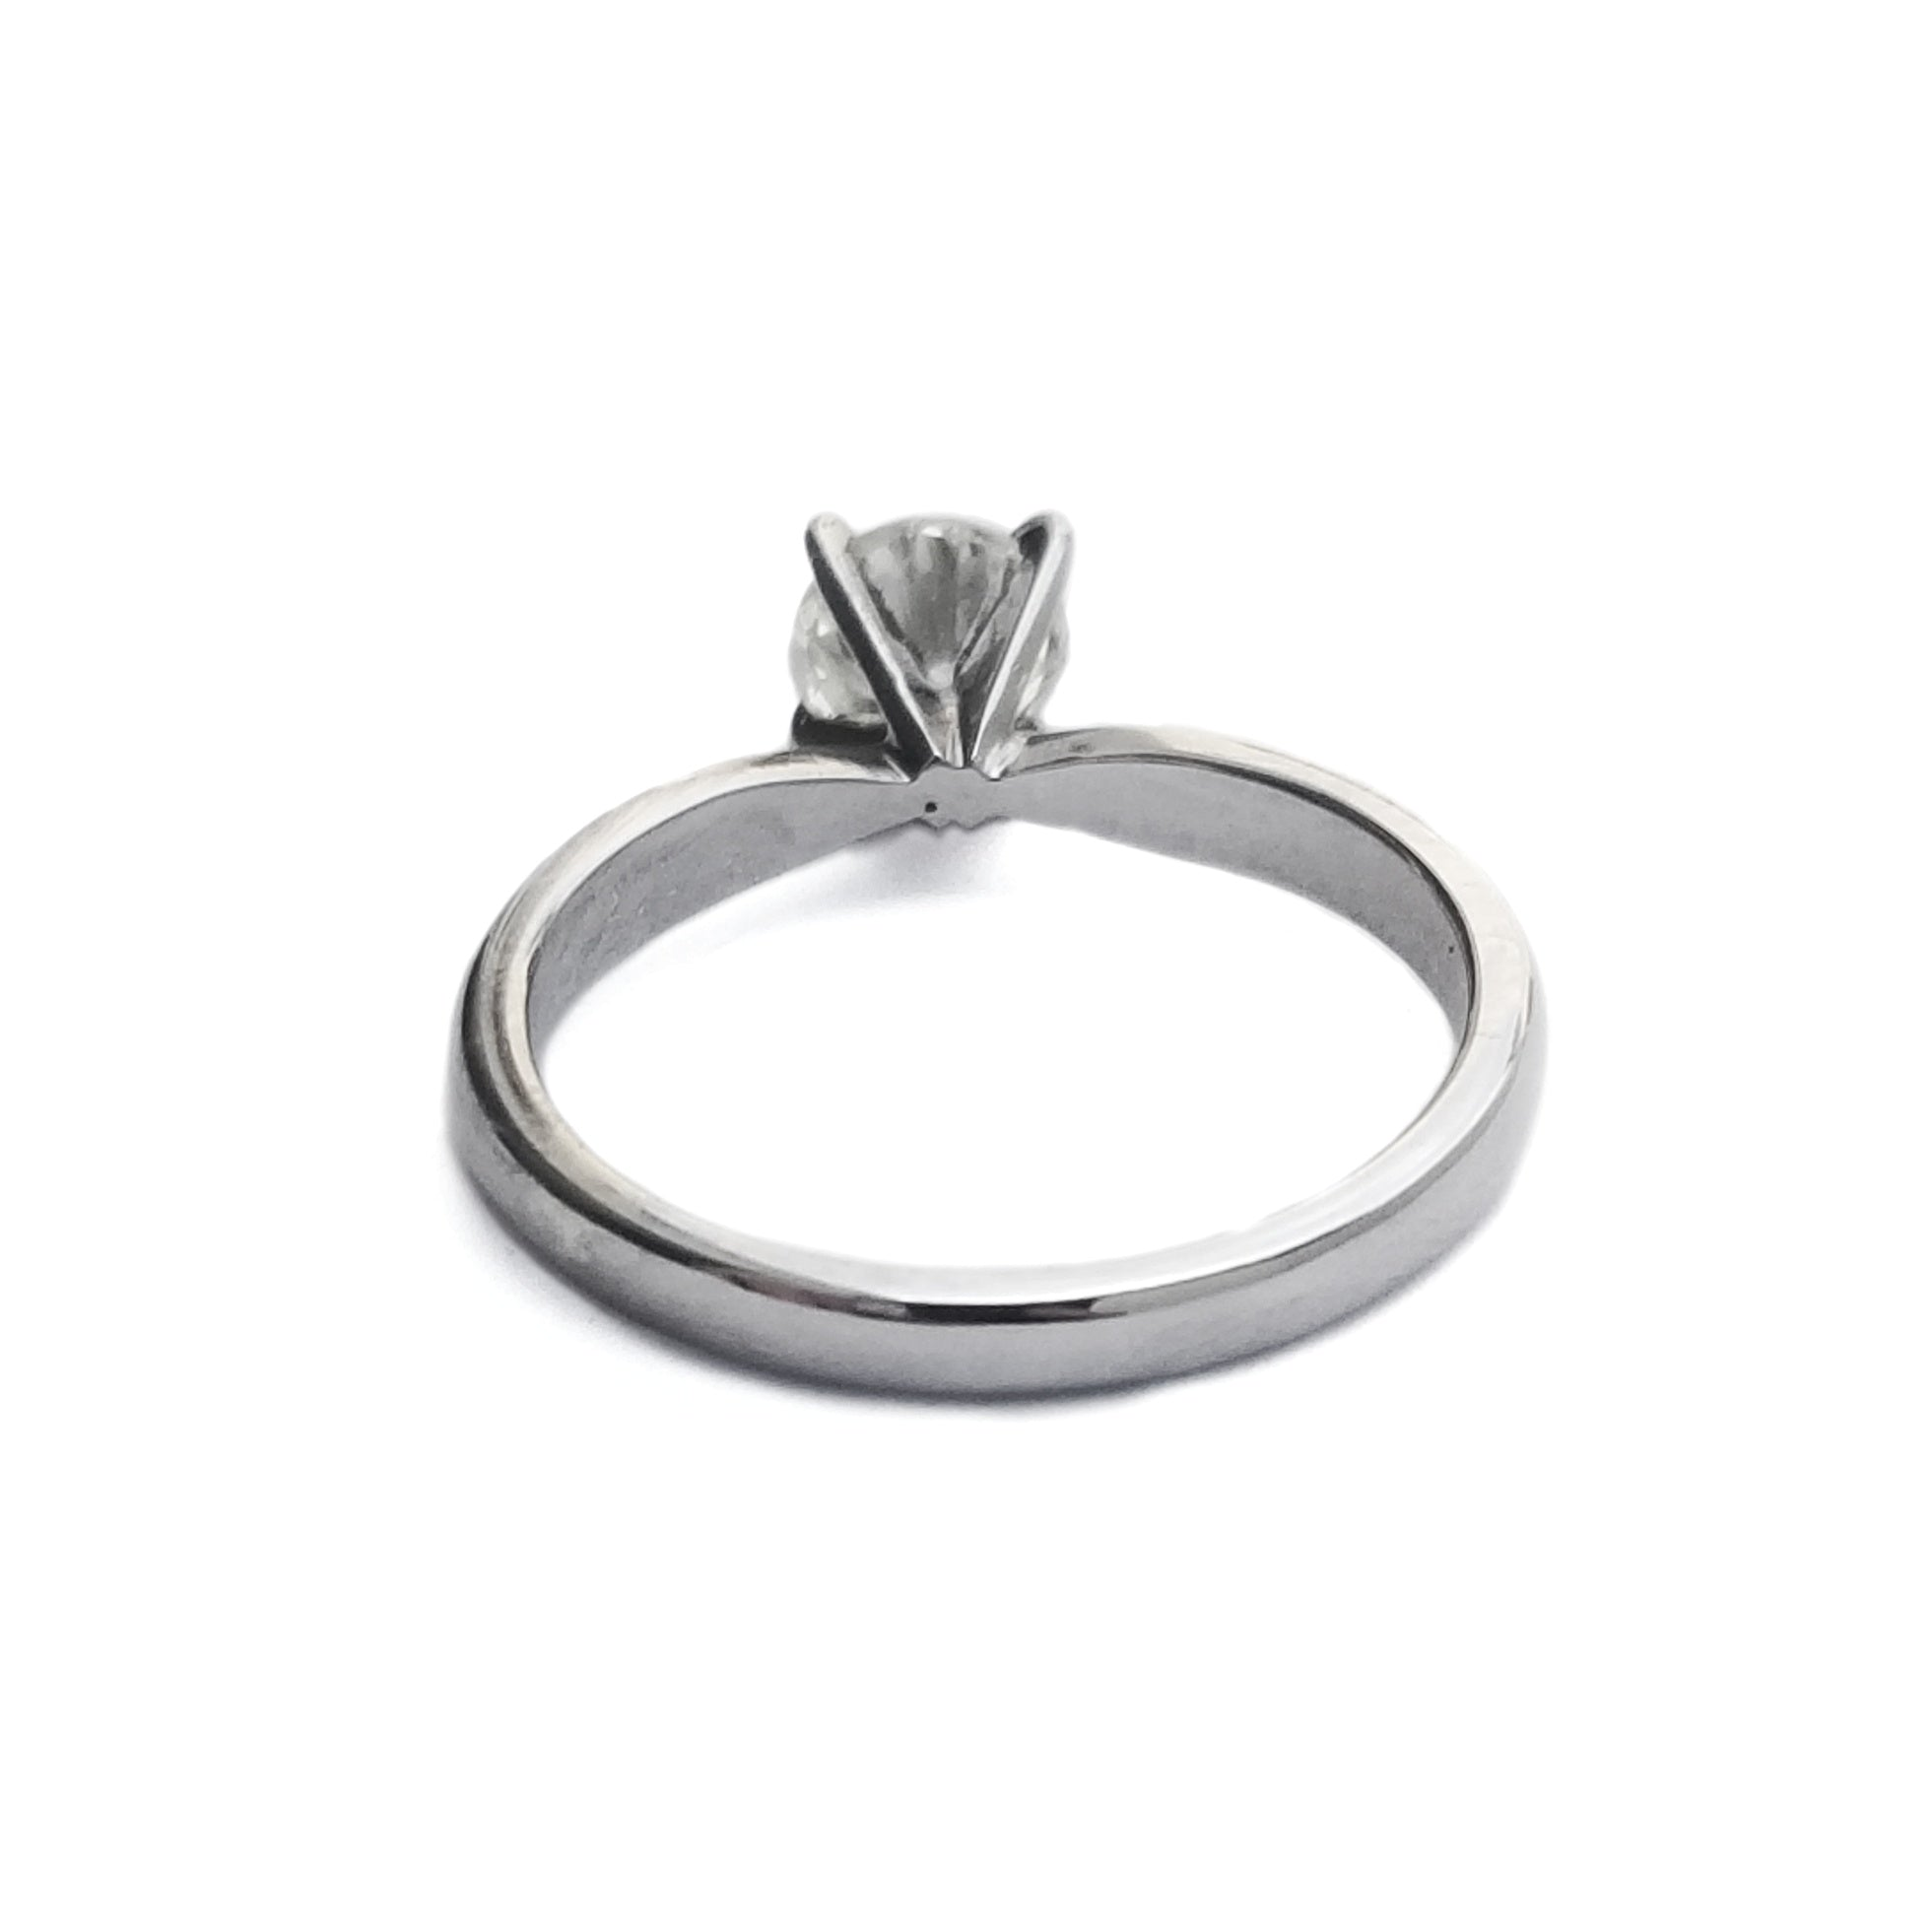 0.82 CT Diamond solitaire engagement ring